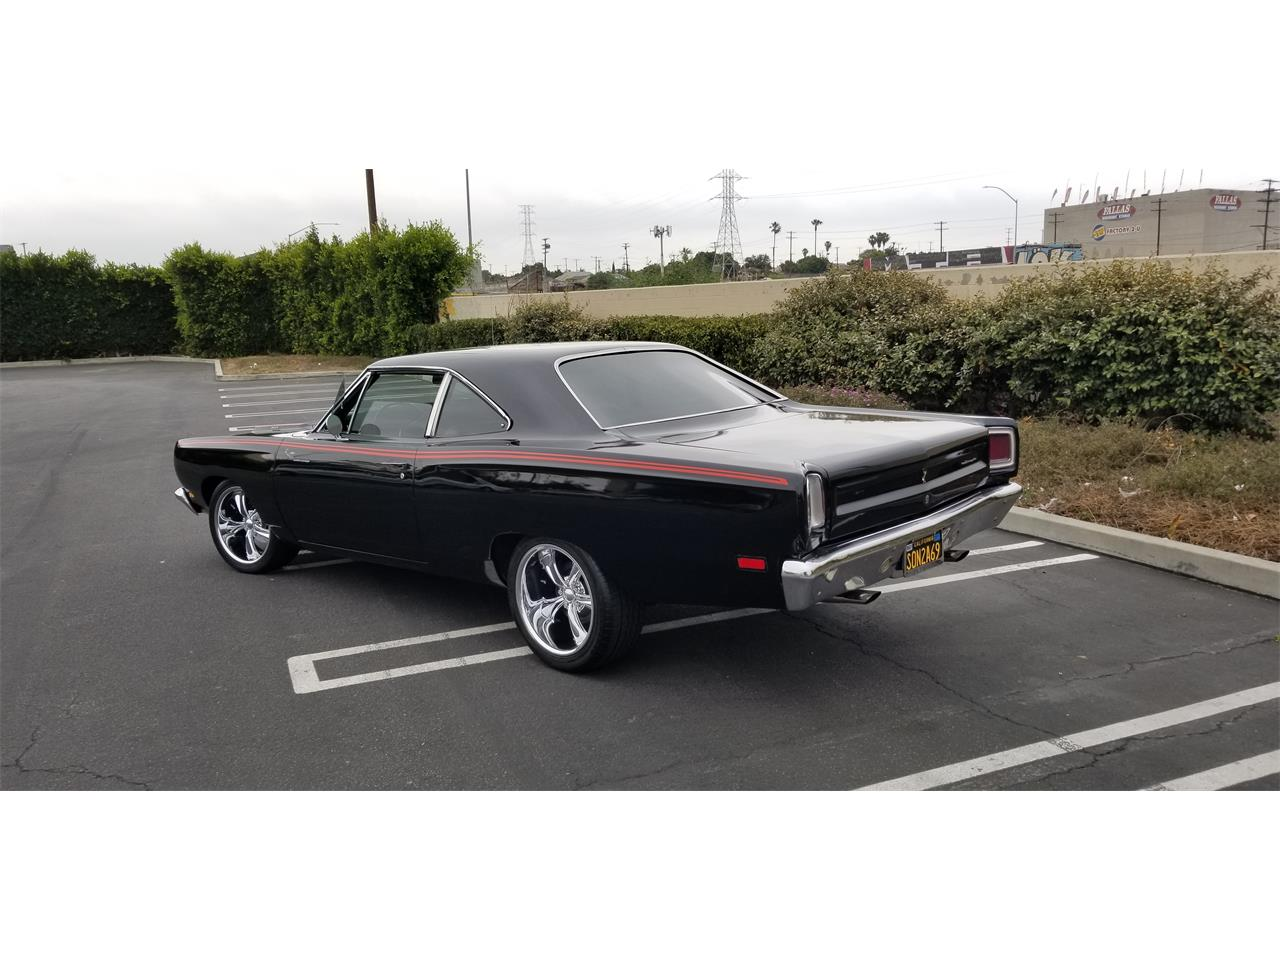 Large Picture of 1969 Plymouth Road Runner located in Gardena California - $35,000.00 Offered by a Private Seller - QBA1